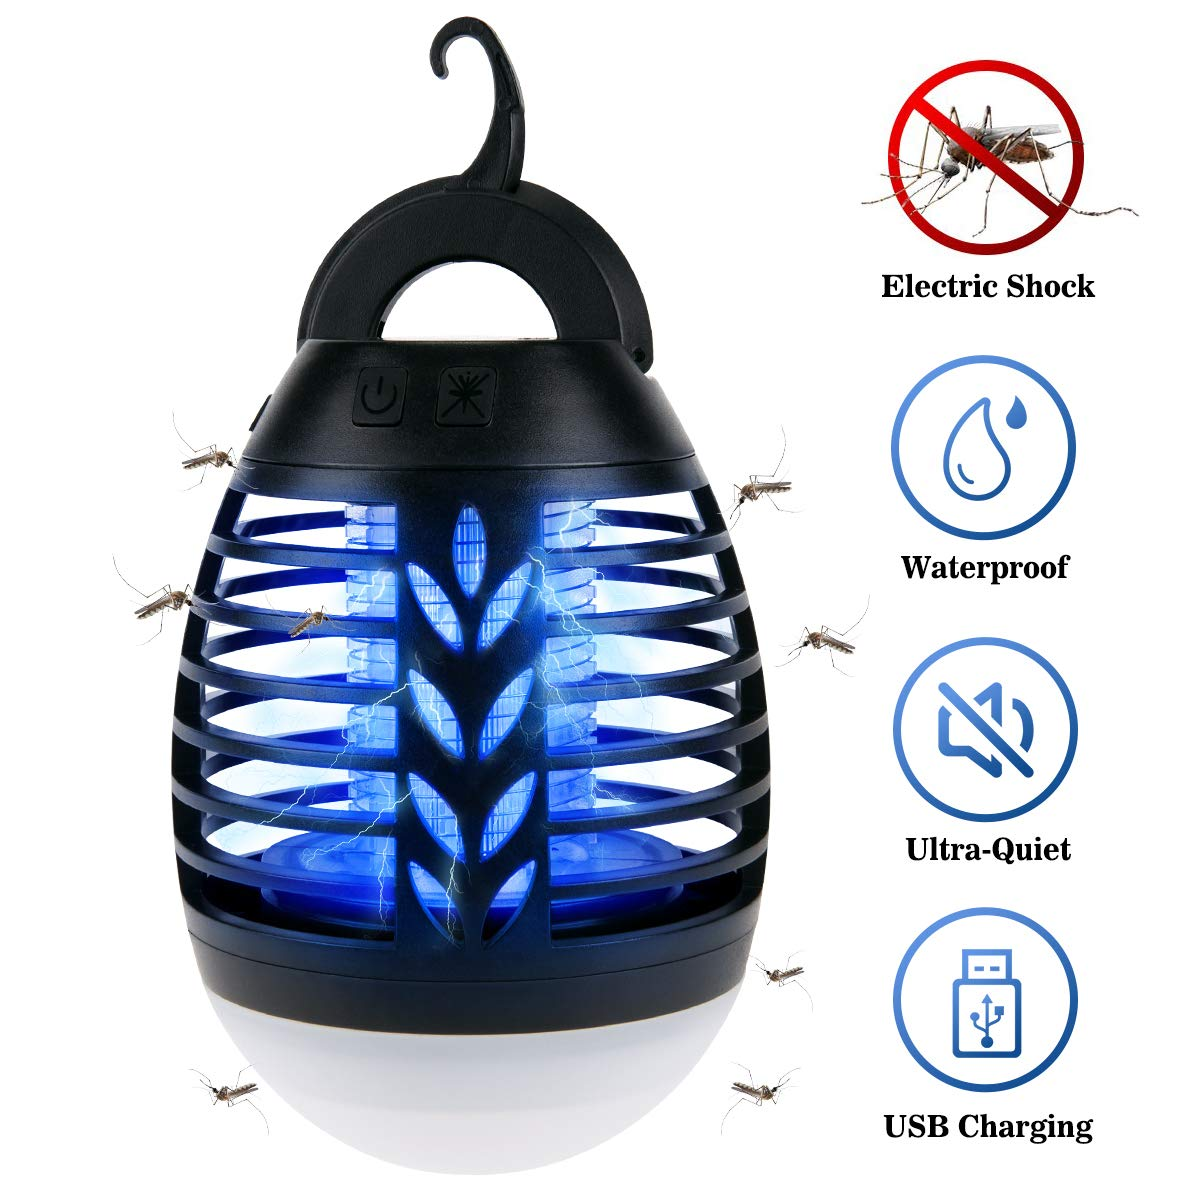 BACKTURE Camping Lamp, 2-in-1 Portable Mosquito Killer LED Bug Zapper IPX6 Waterproof Outdoor Camping Lantern USB Rechargeable 3 Lighting Modes Suitable for Home, Camping, Hiking, Fishing, Emergency